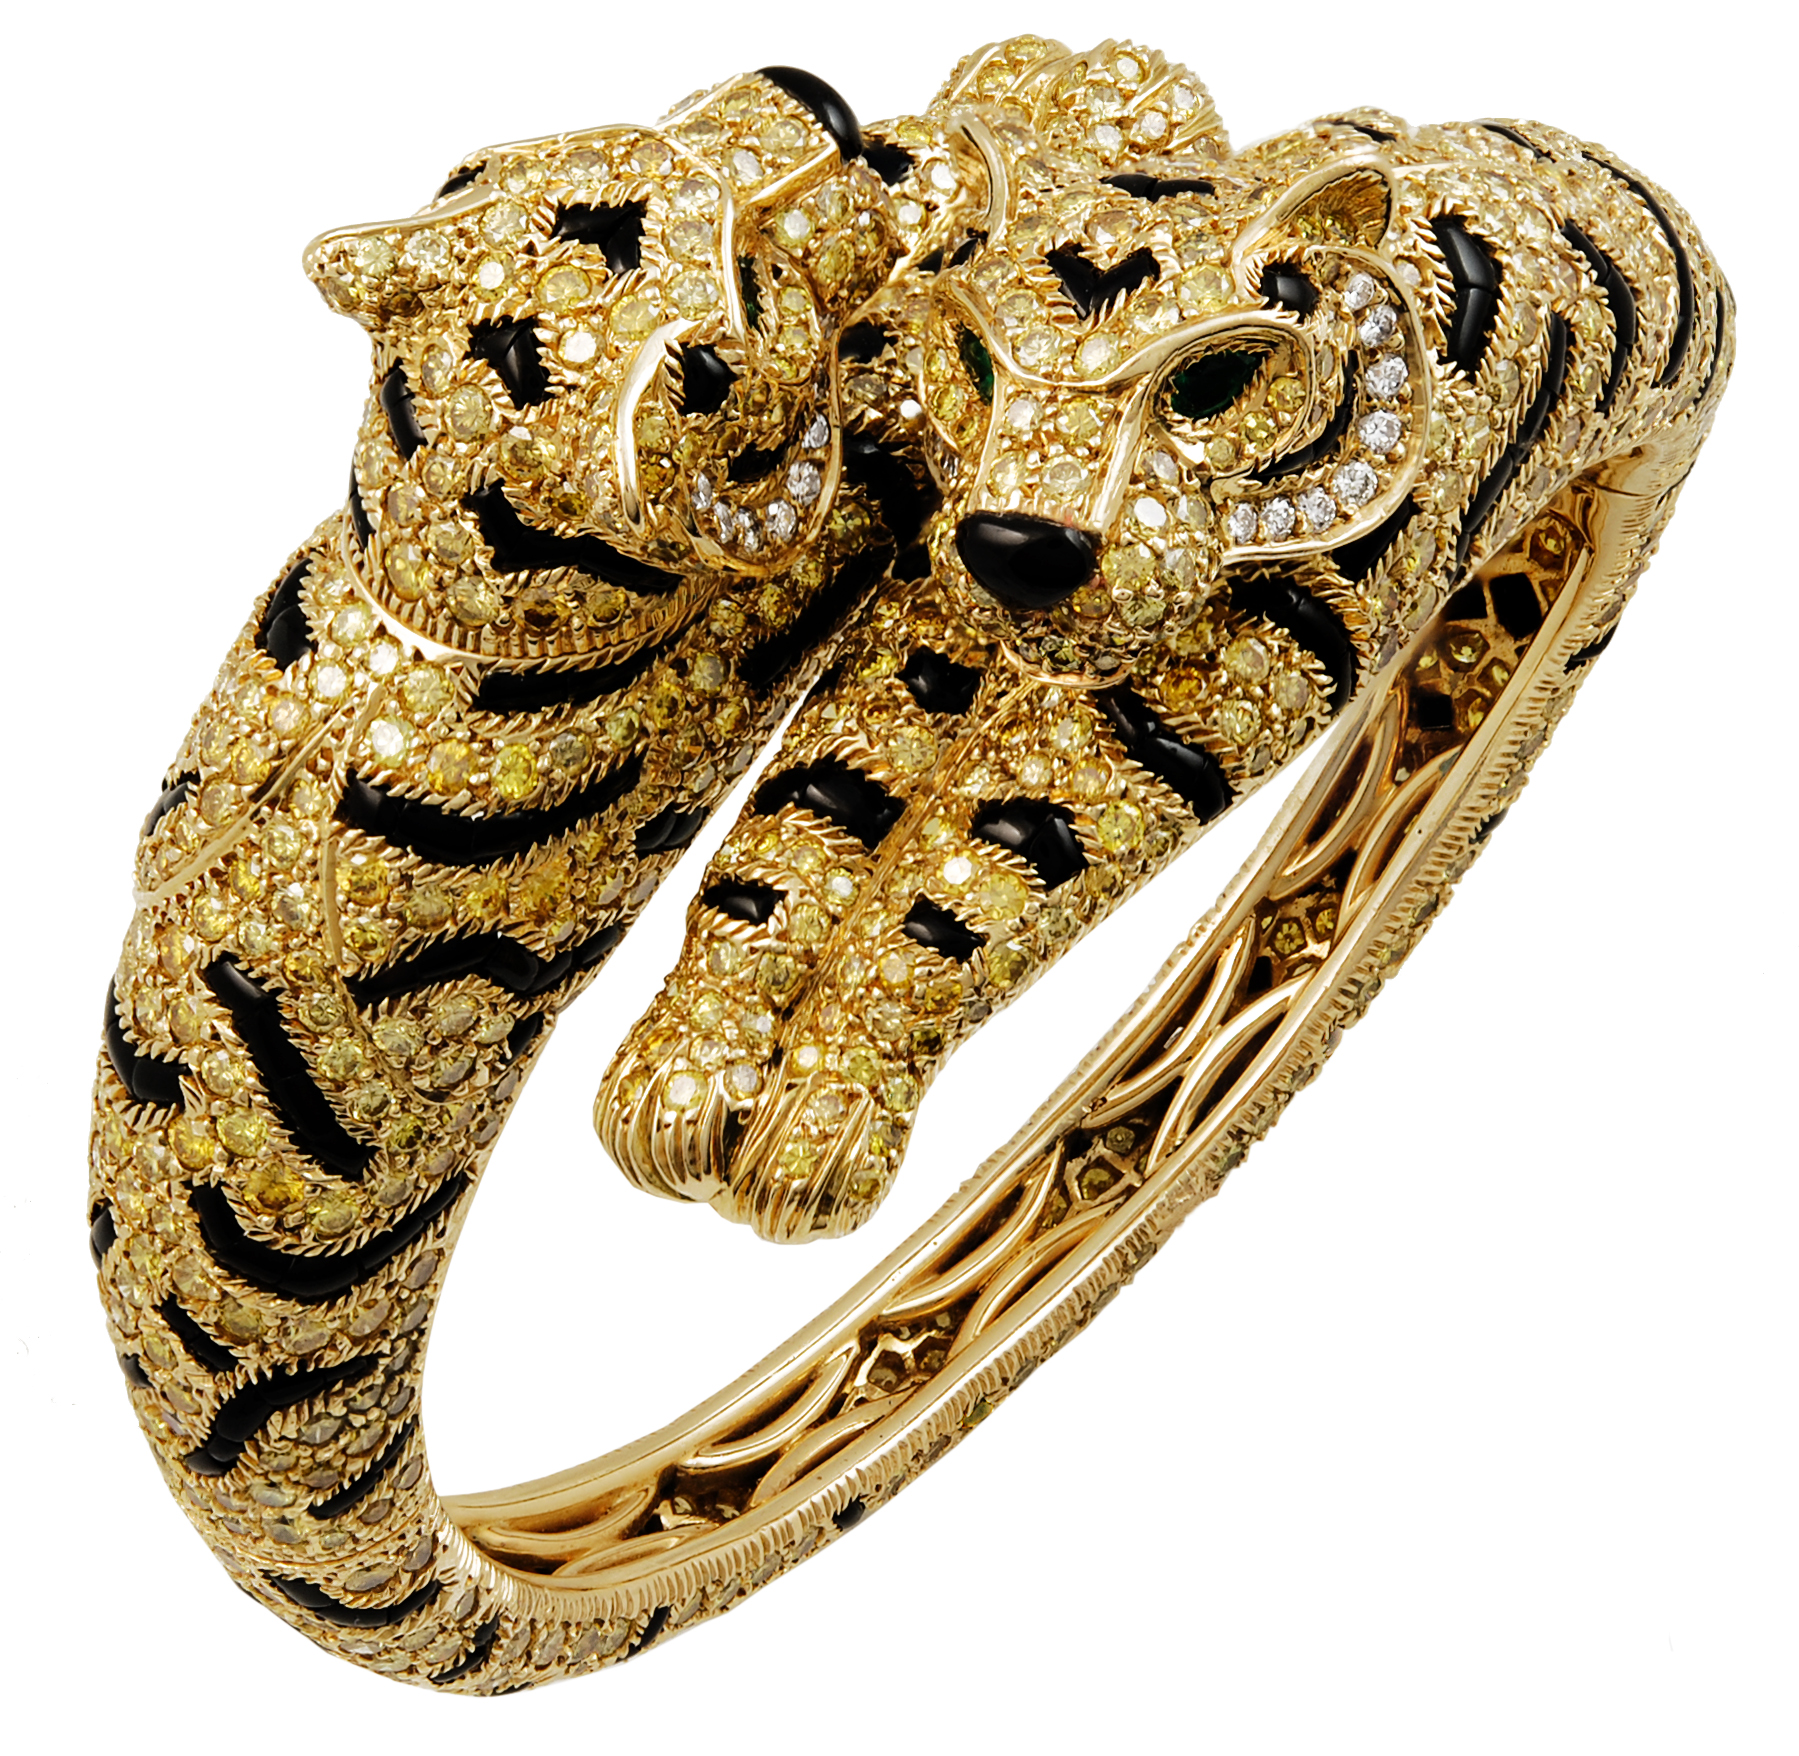 Cartier 18k Yellow Gold Fancy Diamonds Onyx And Emerald Two Headed Tiger Bangle Yafa Jewelry Los Angeles Antique Design Show